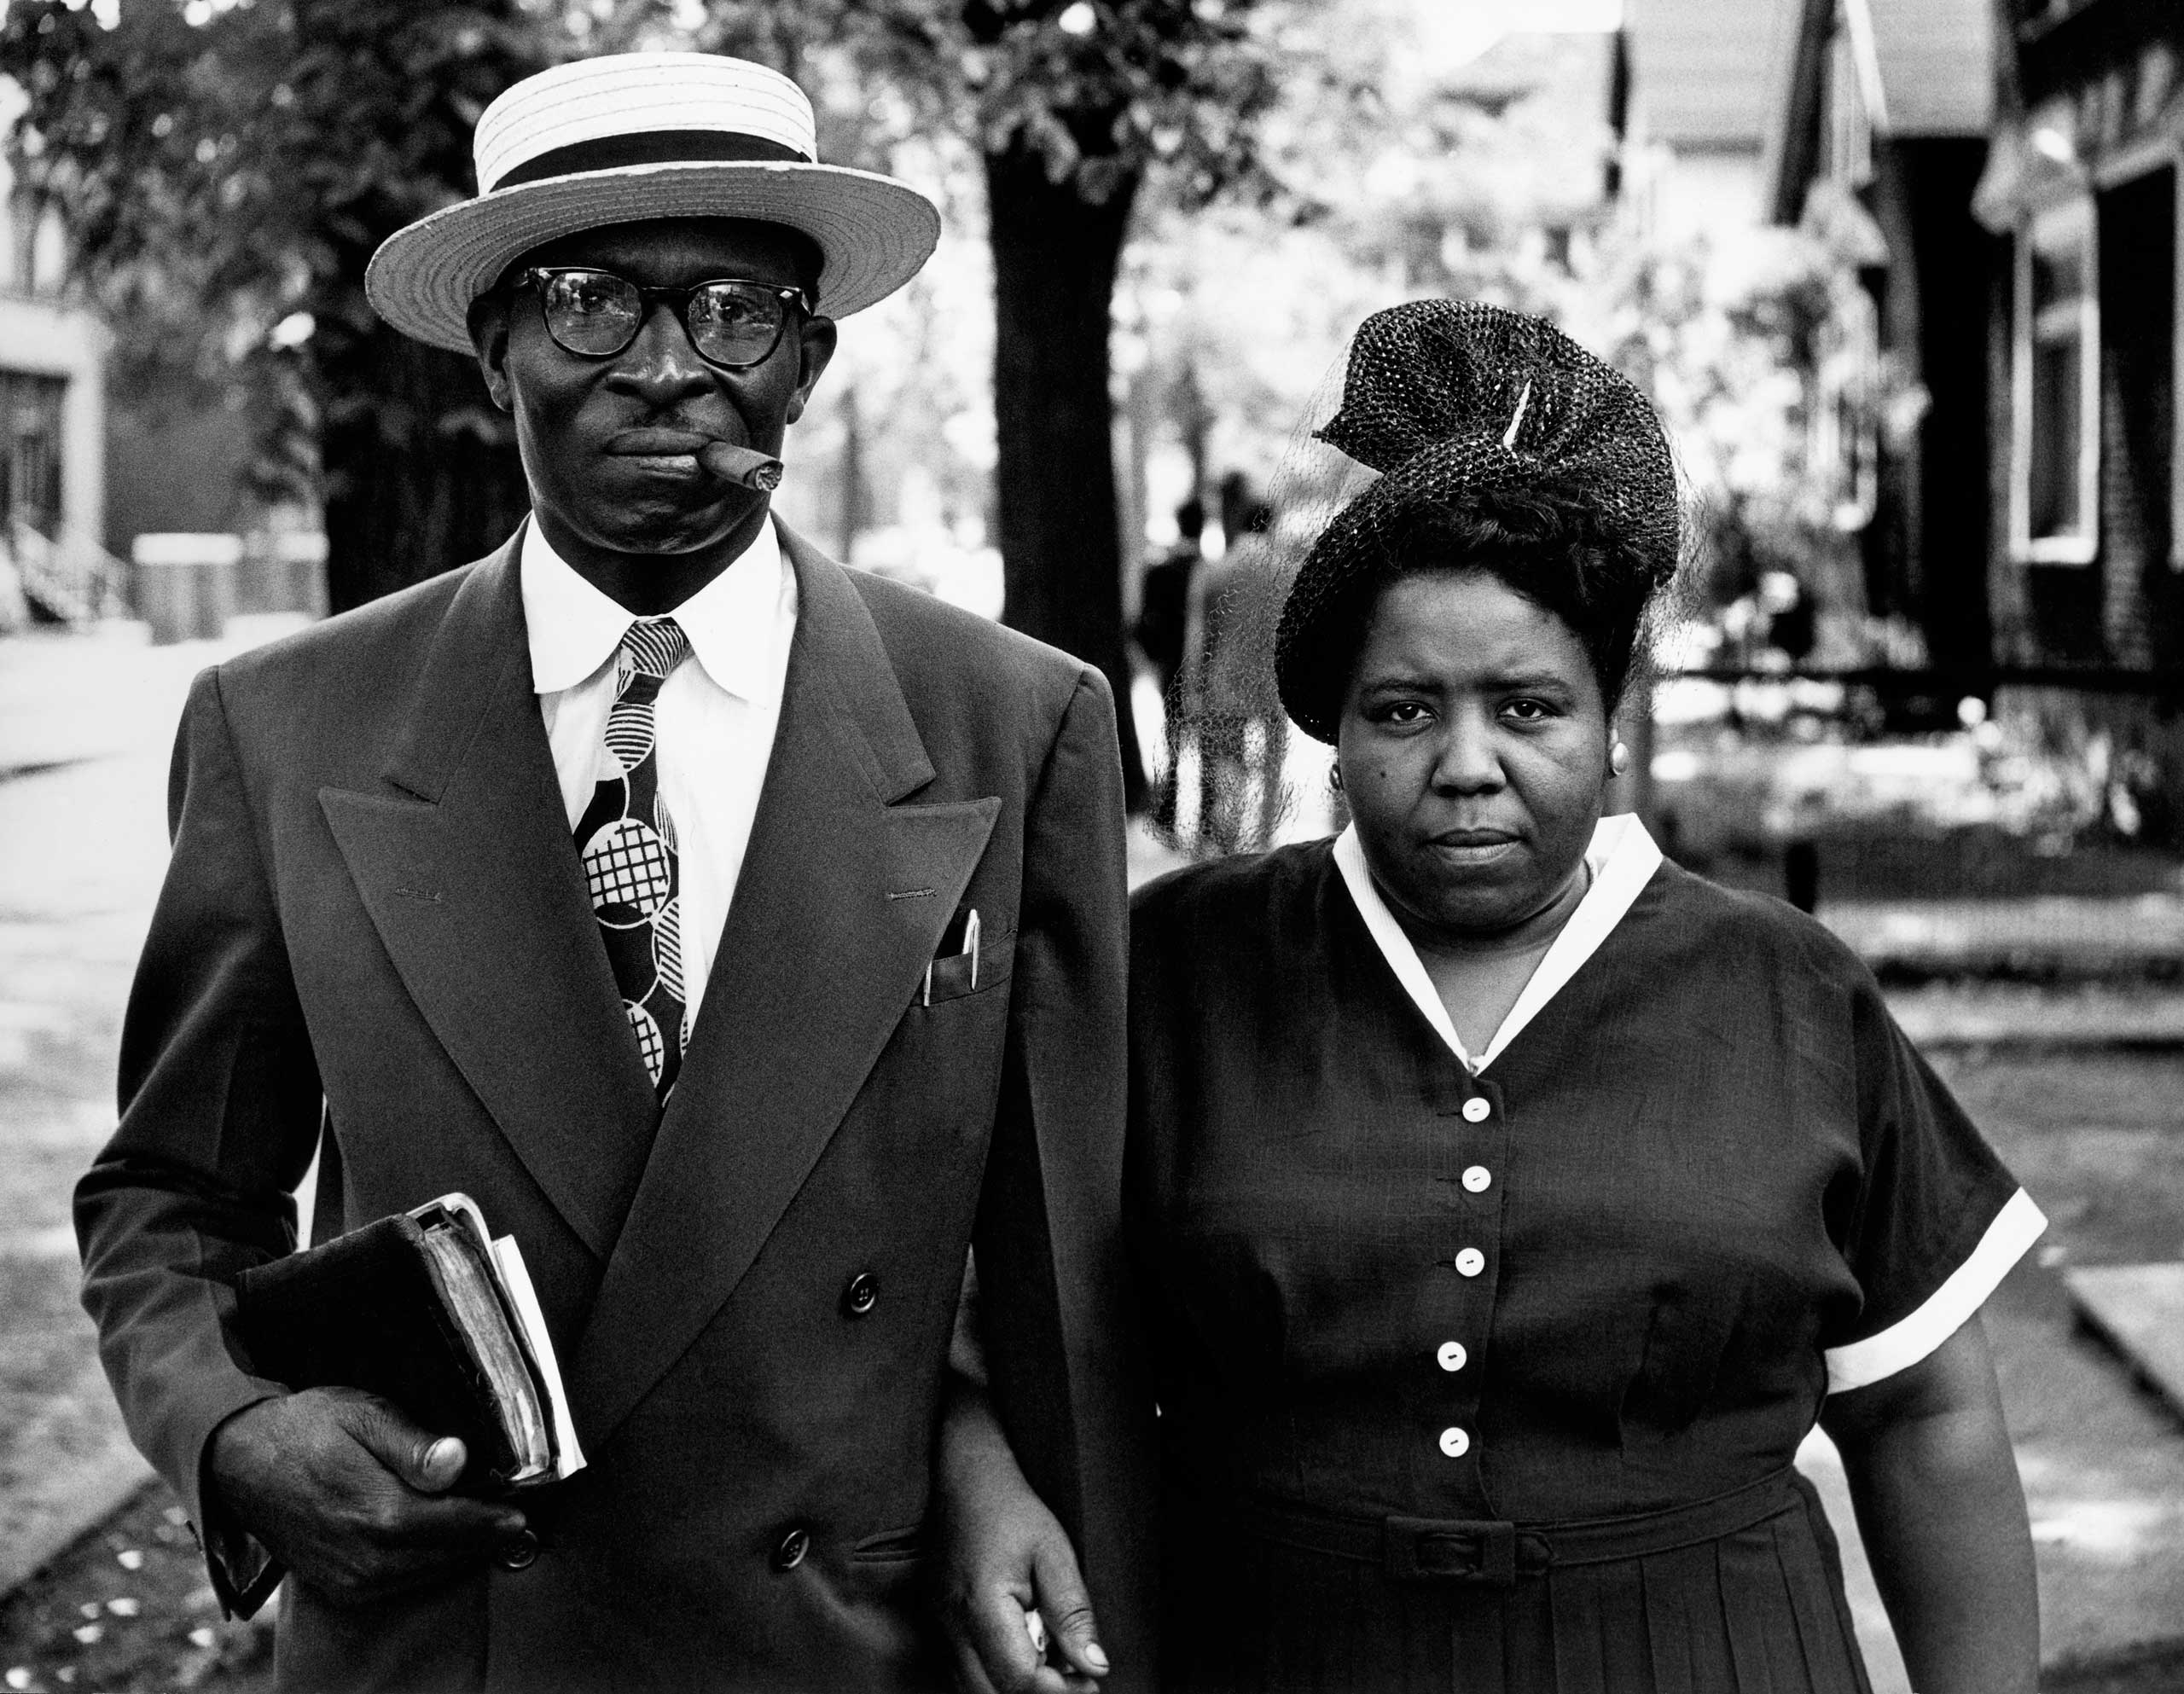 The New York Times: 'A Long Hungry Look': Forgotten Gordon Parks Photos Document Segregation                               Husband and Wife, Sunday Morning, Detroit, Michigan. 1950.